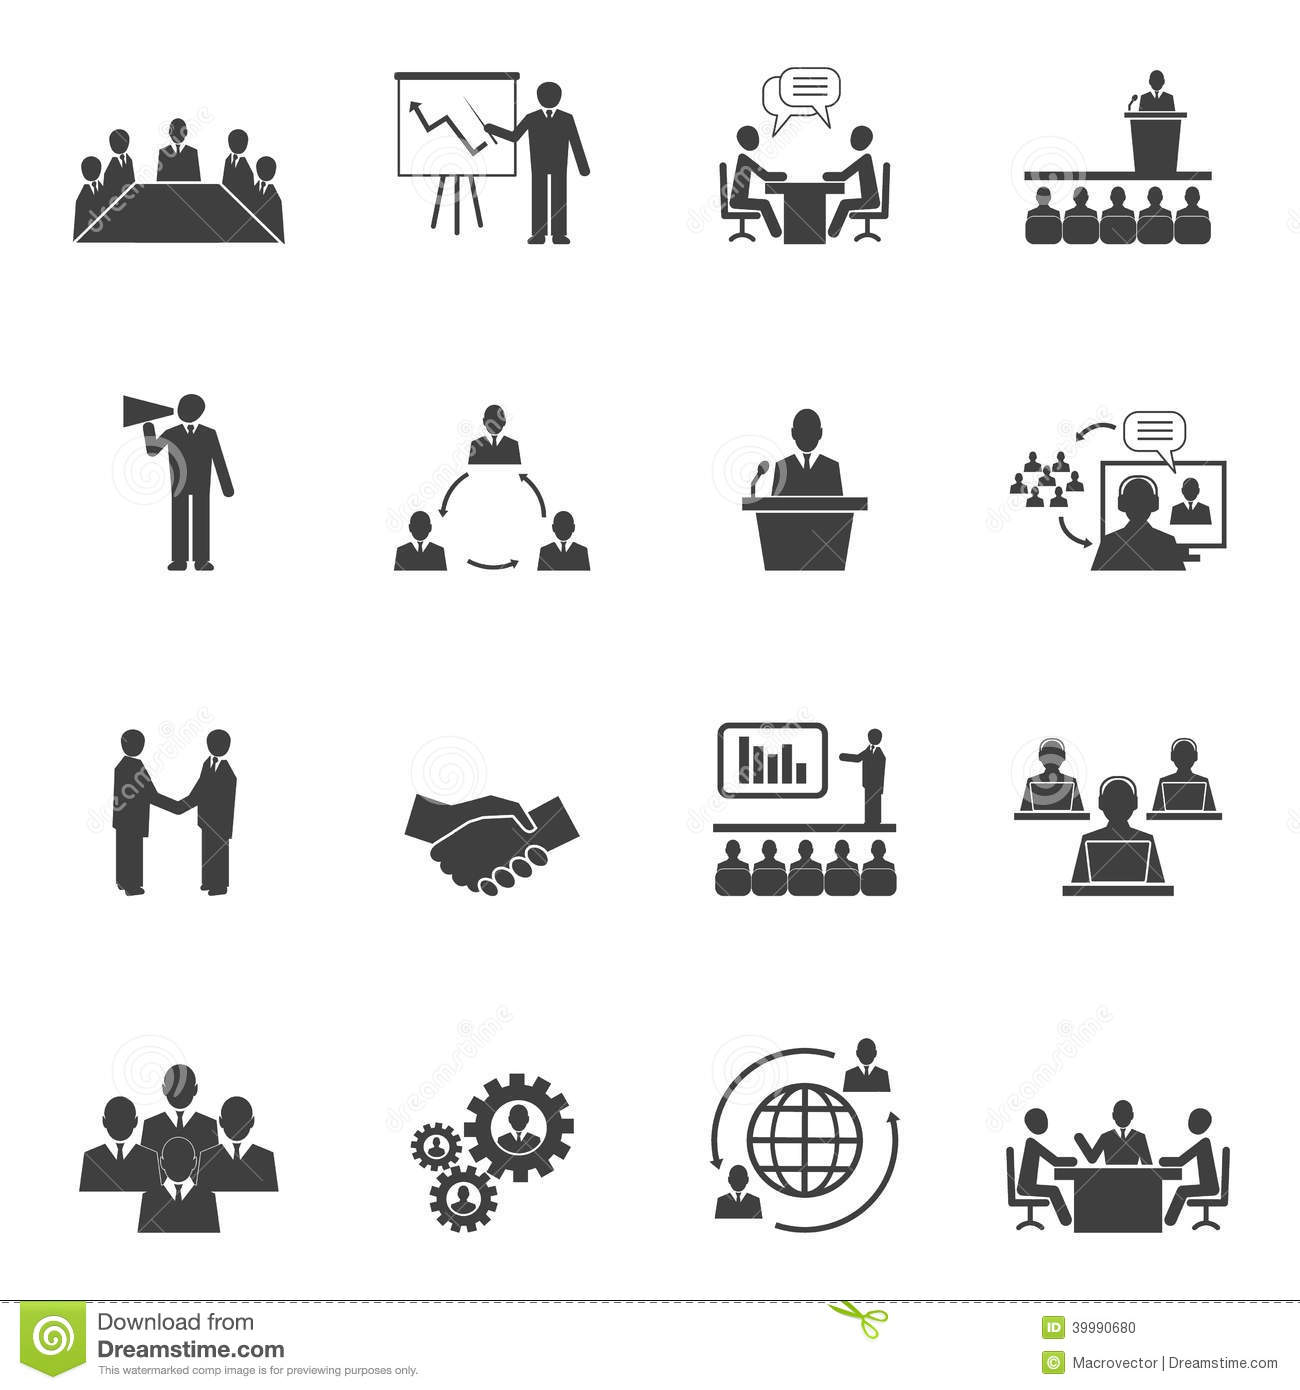 keystone wall design with Stock Photo Meet People Online Icons Business Meeting Strategic Pictograms Set Presentation Conference Teamwork Isolated Vector Image39990680 on Regulator Wall Mounted Articulated Pot Filler Matte Black Wheel And Lever Handles Rgpf01 in addition Product product id 153 together with Brick Steps in addition Knitting Needles Paint additionally Coquina 1177 Mediterranean Exterior T a.